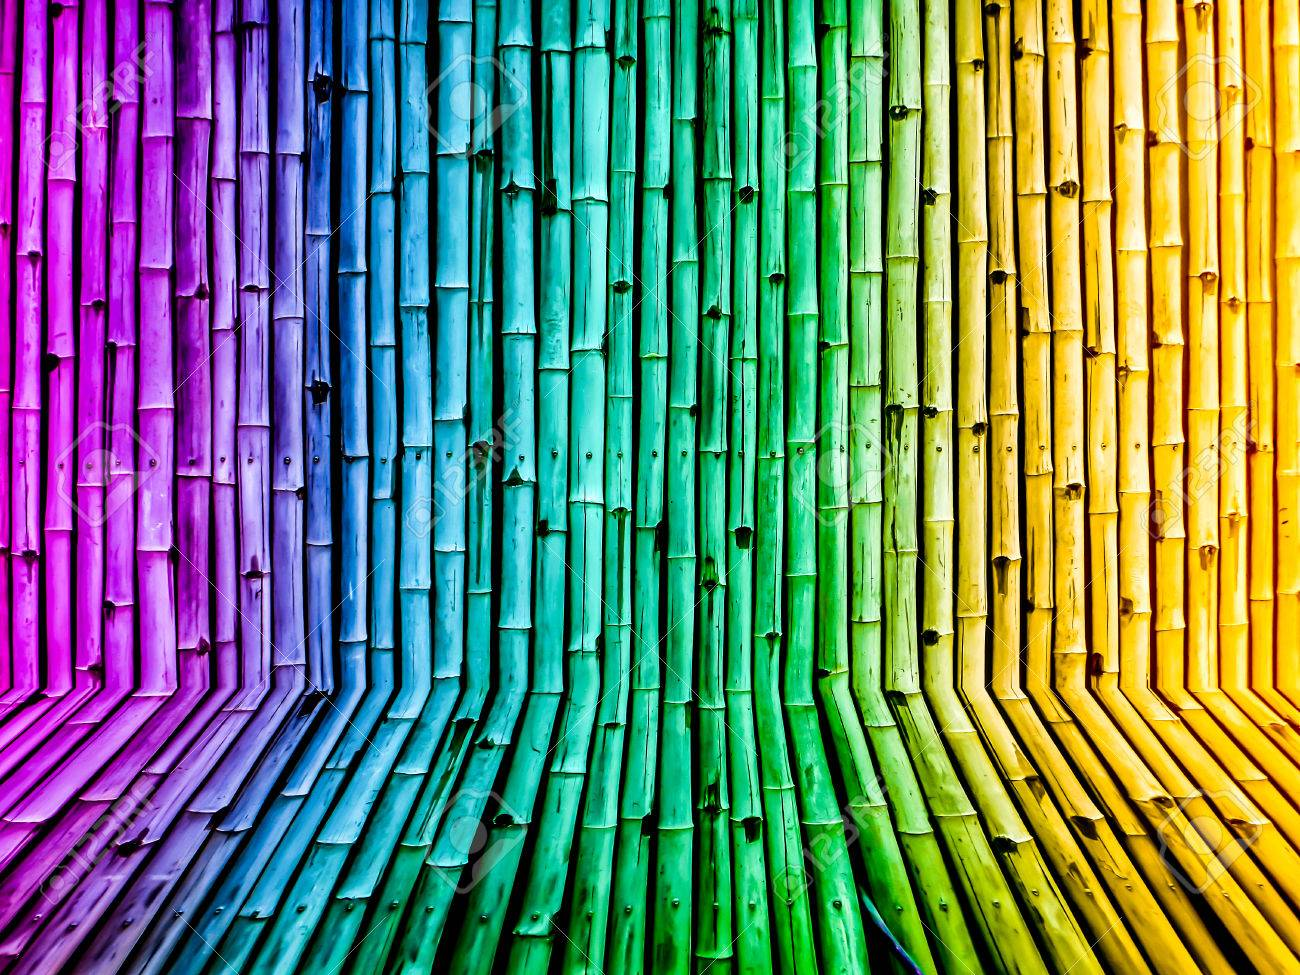 Bamboo Fence Vintage Gradient Background Wallpaper From Nature Stock Photo